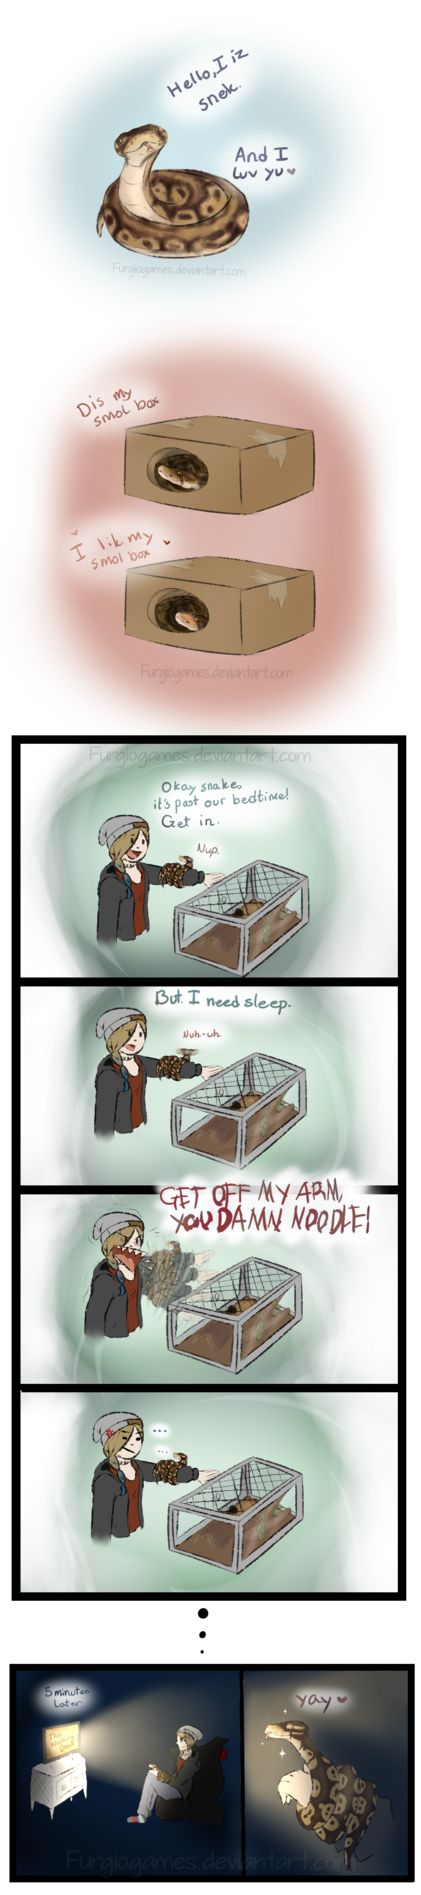 Snek comic by FurgioGames.deviantart.com on @DeviantArt<<<the accuracy of this is terrifying